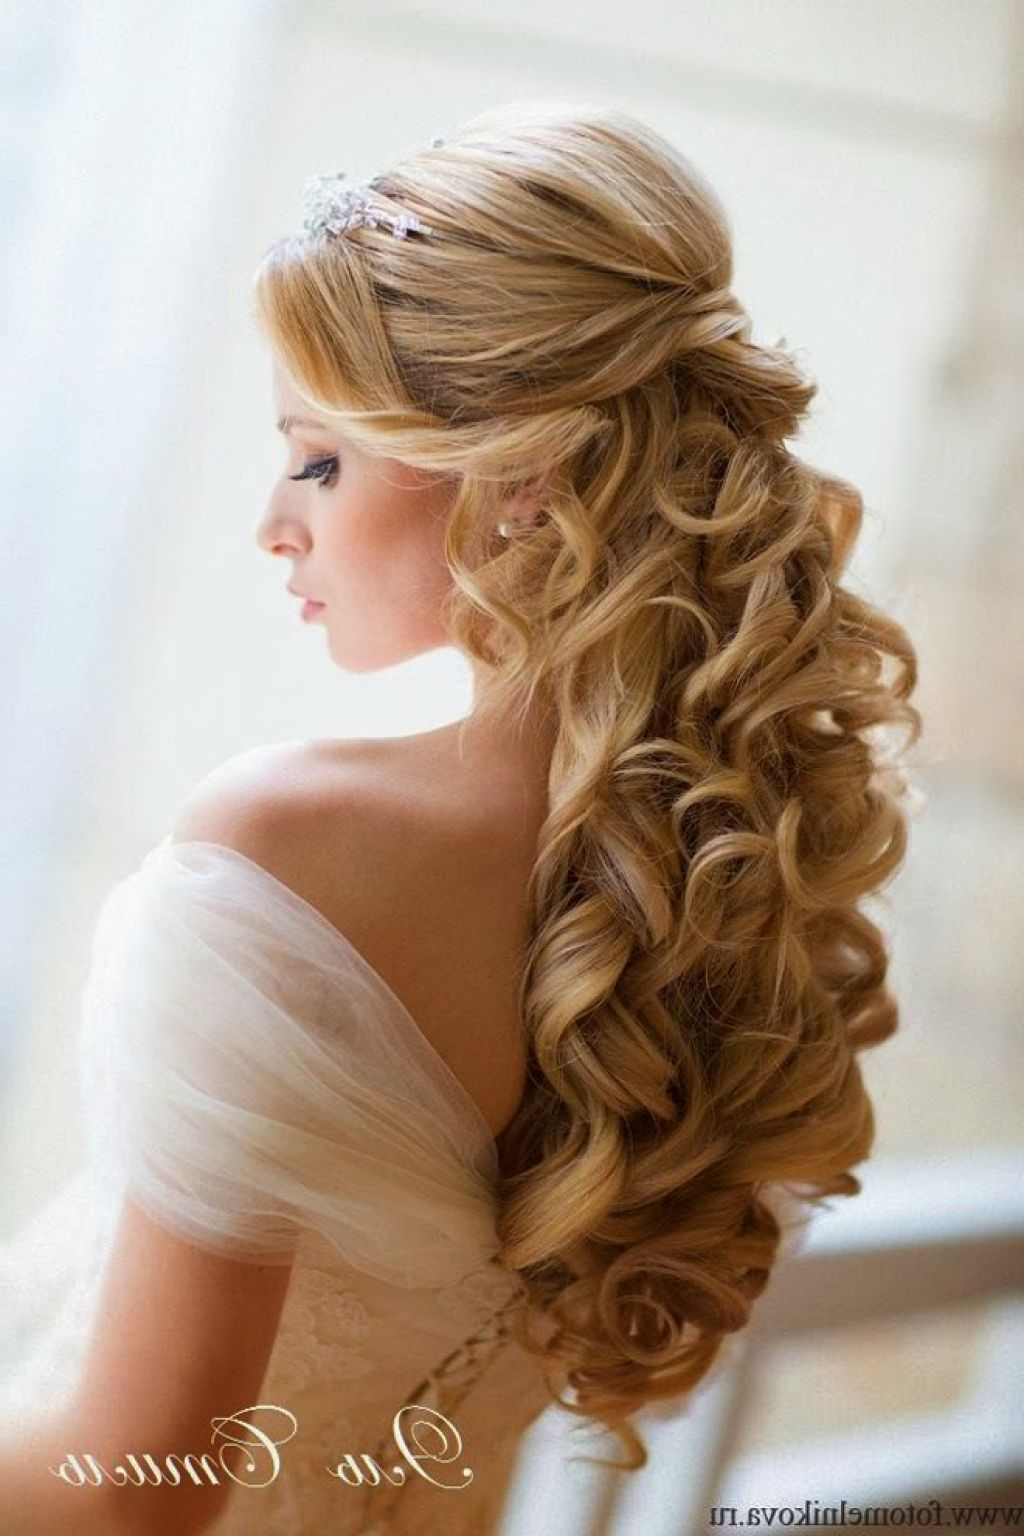 Barbie Princess Hairstyle Games Prom Hairstyles Medium